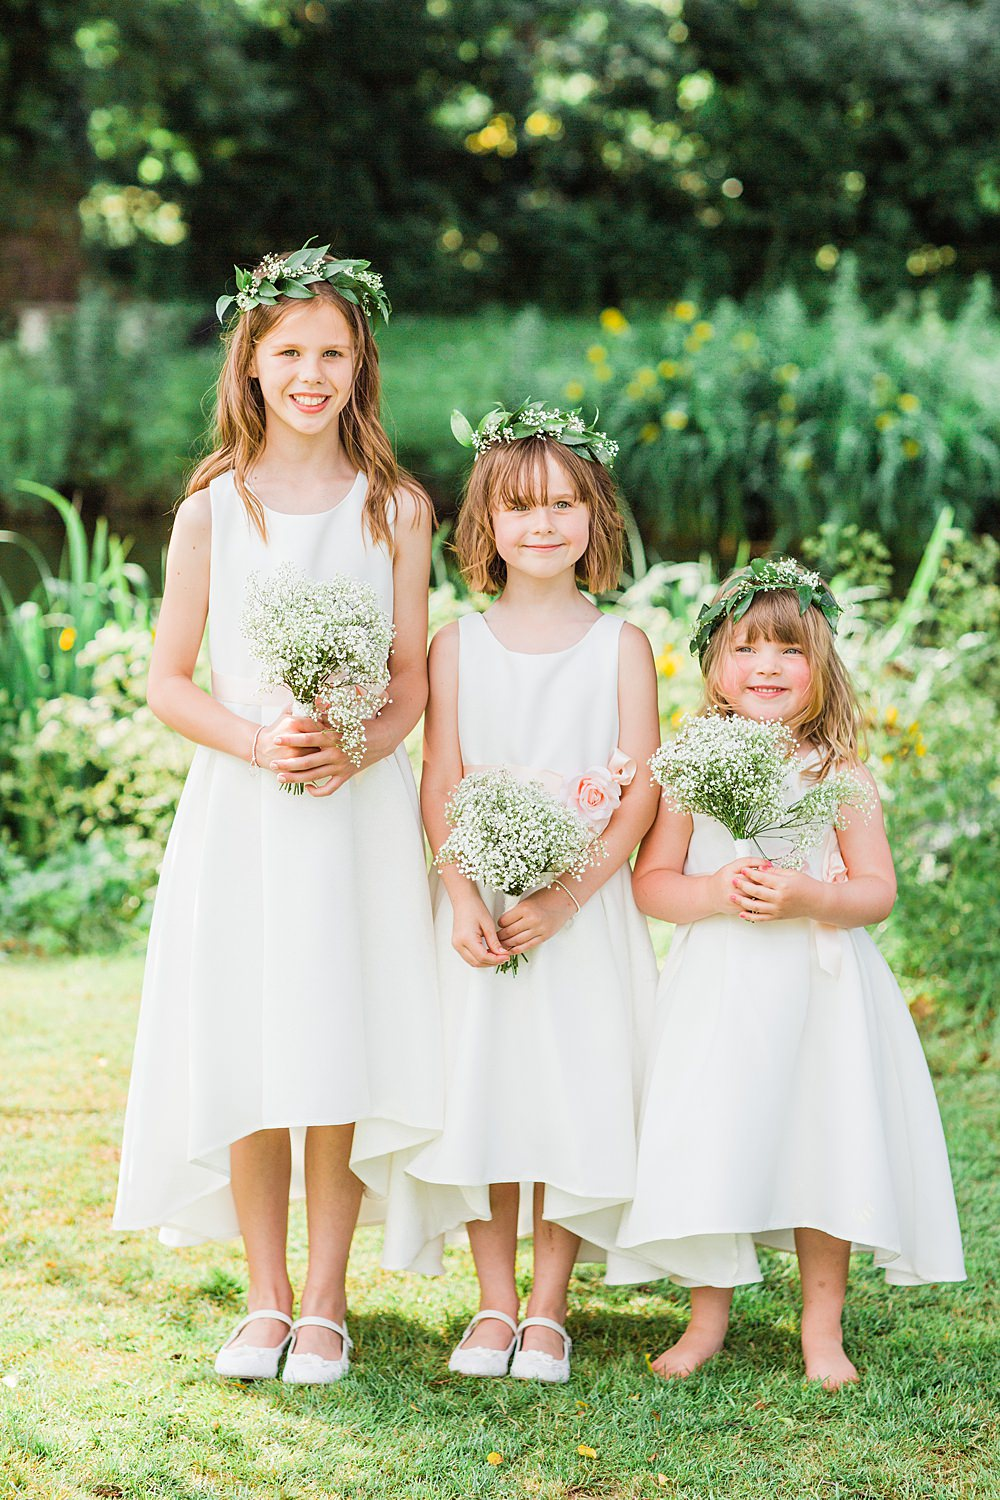 Flower Girls Flower Crowns Sheene Mill Wedding Terri & Lori Photography and Film Studio